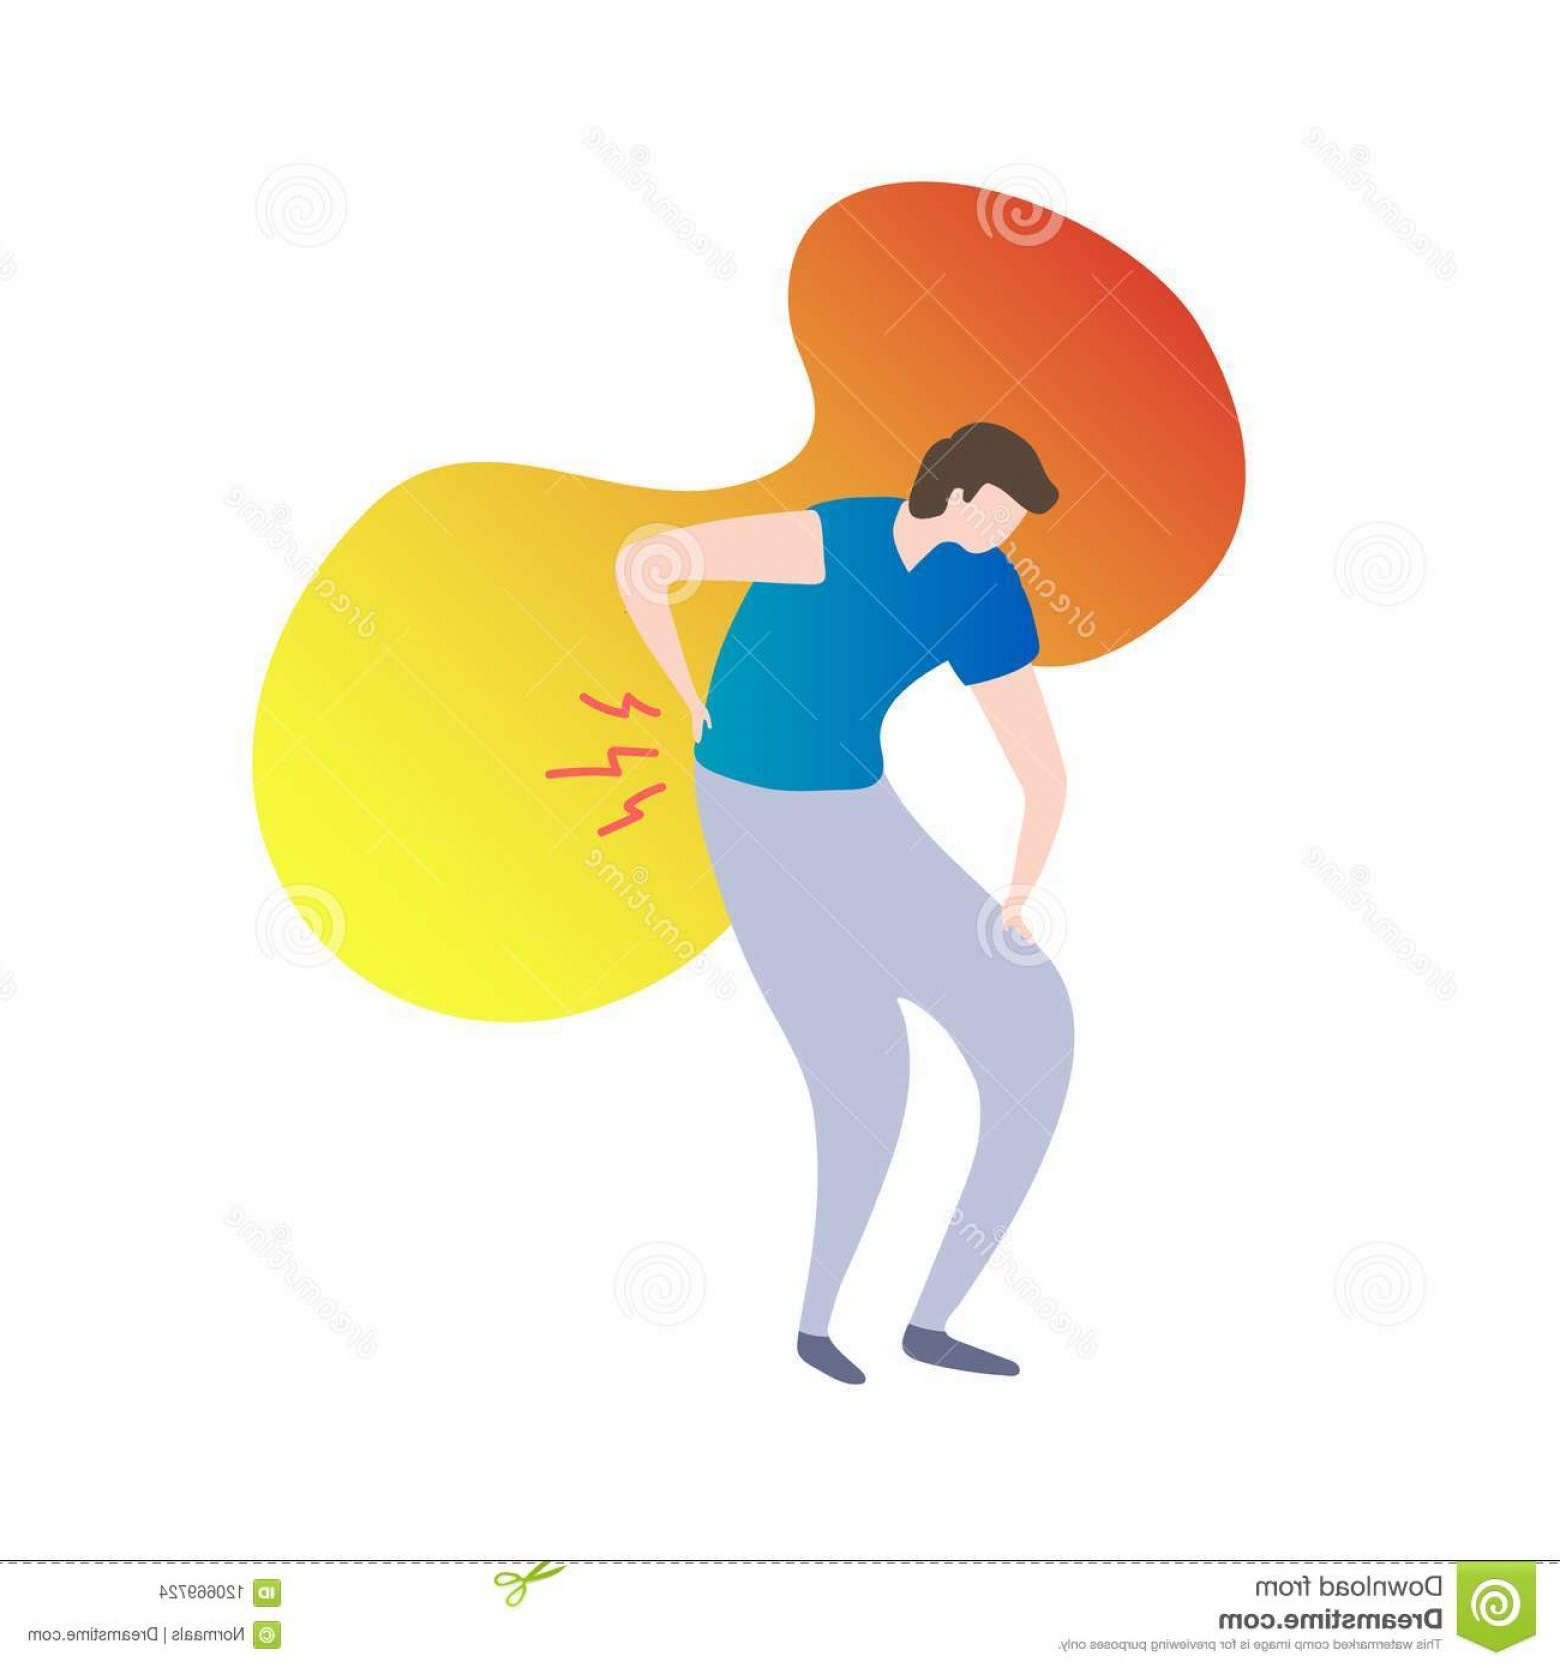 Vector Person Holding: Back Pain Concept Modern Vector Illustration Male Person Holding Fluid Gradient Background Painful Spinal Injury Tension Image